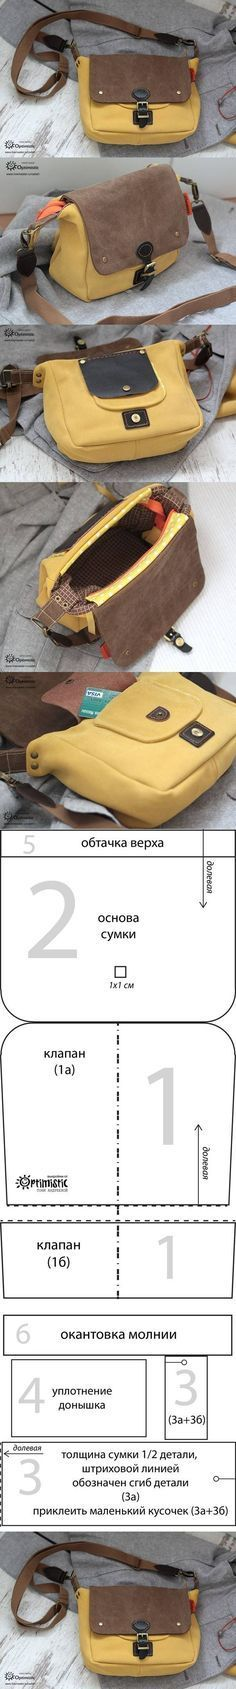 DIY Sew Handbag Pattern DIY Projects | UsefulDIY.com Follow Us on Facebook ==> http://www.facebook.com/UsefulDiy